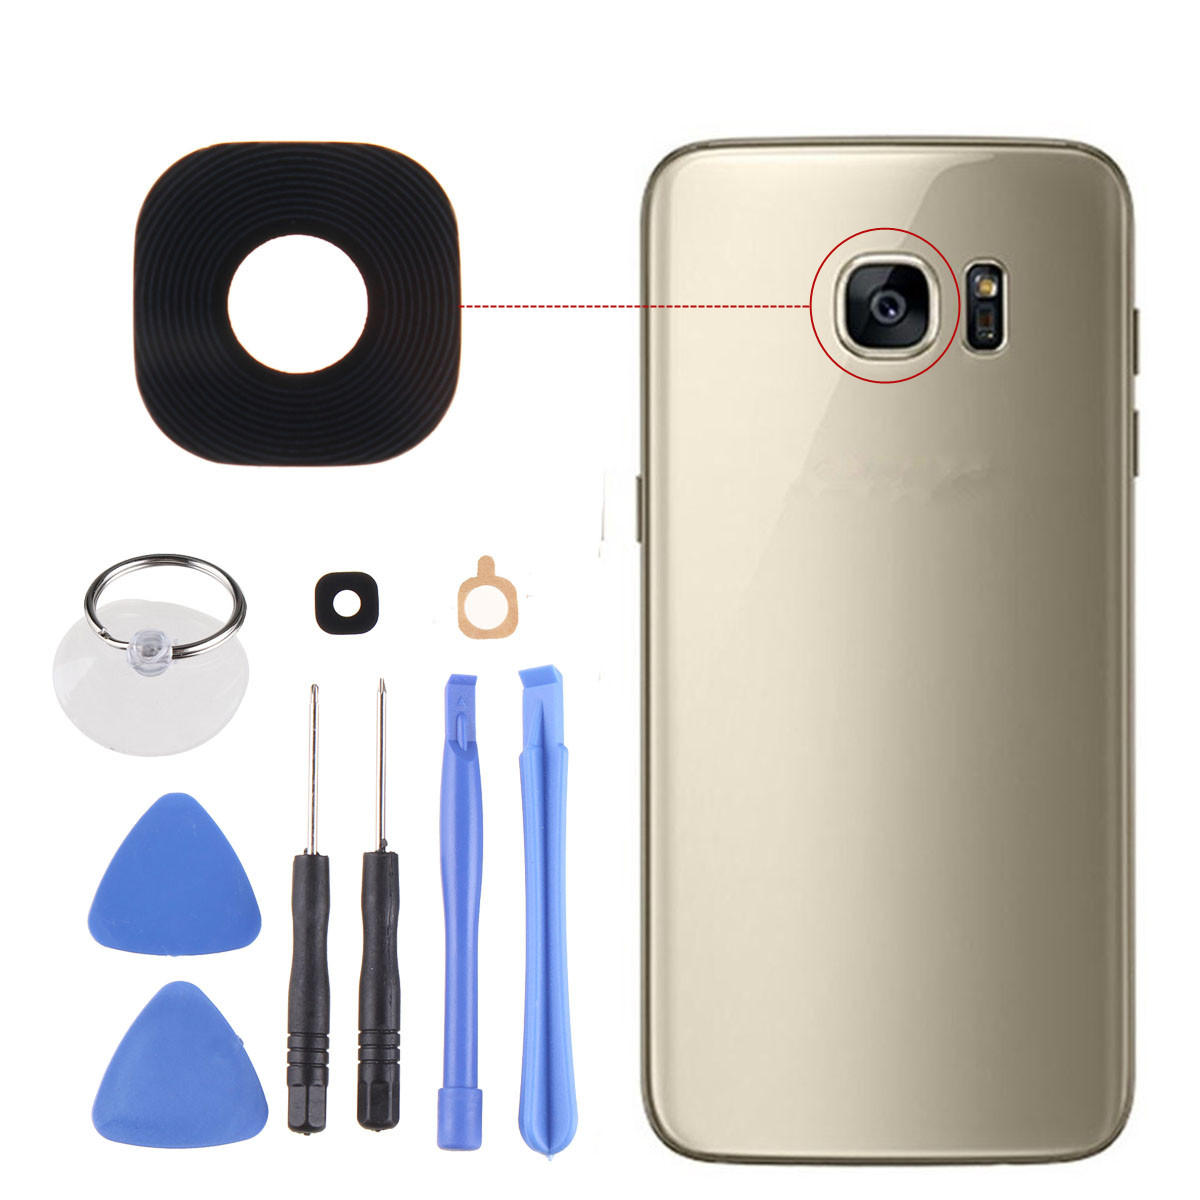 sports shoes 2f9c6 1c38d Black Rear Camera Glass Adhesive Lens Cover + Tools for Samsung Galaxy S7  Edge